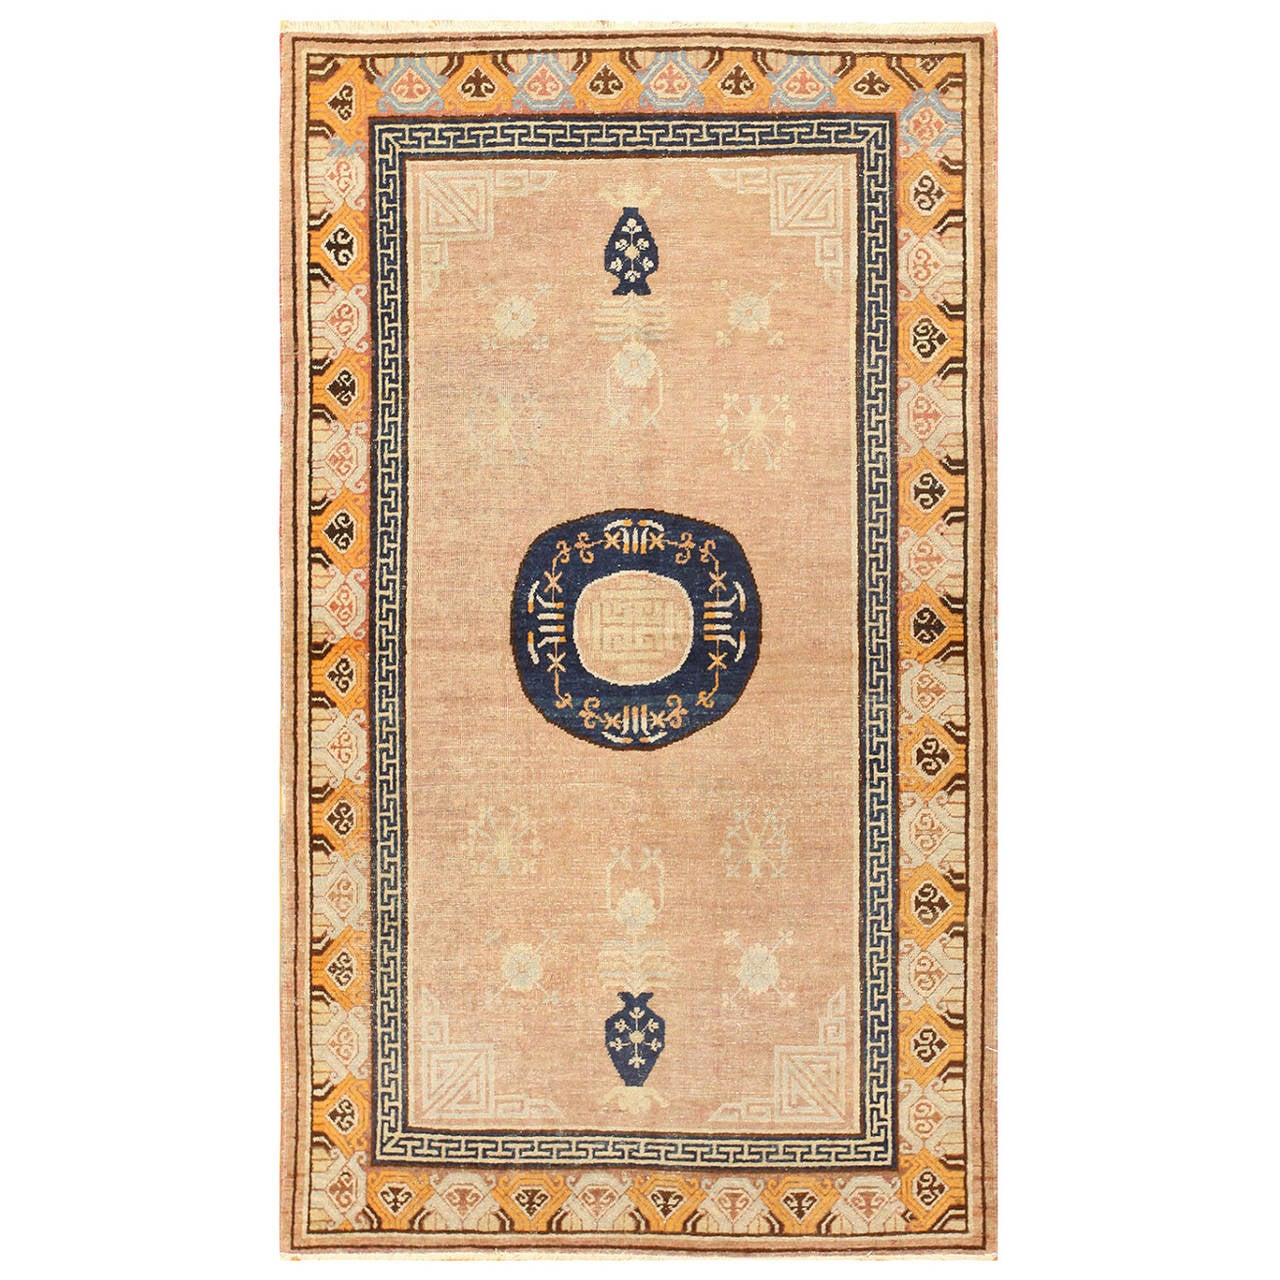 Antique Khotan Rug from East Turkestan